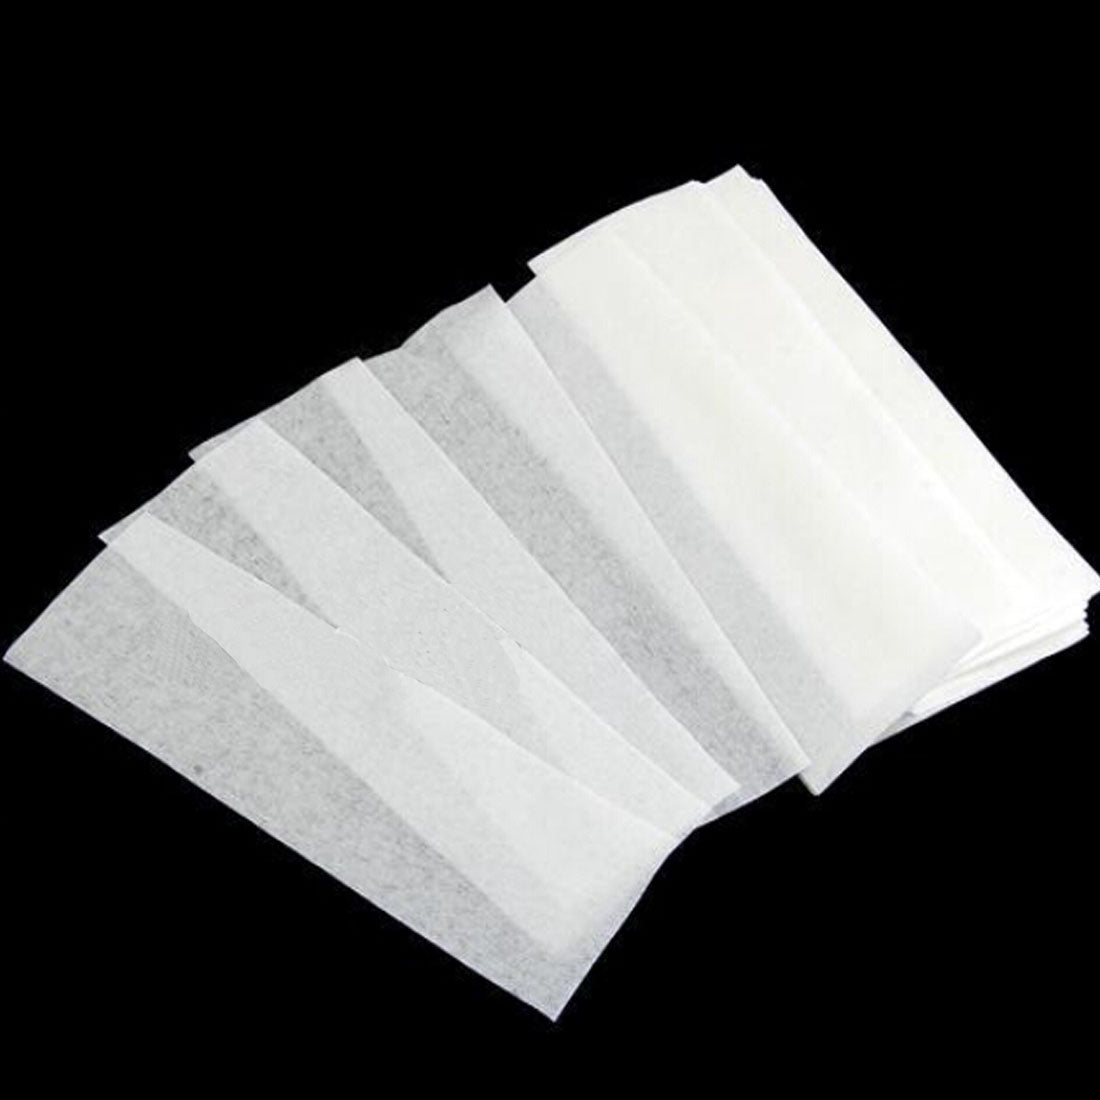 100pcs/set Hair Removal Remove Epilator Paper Waxing Depilatory Strip Nonwoven Fast Delivery